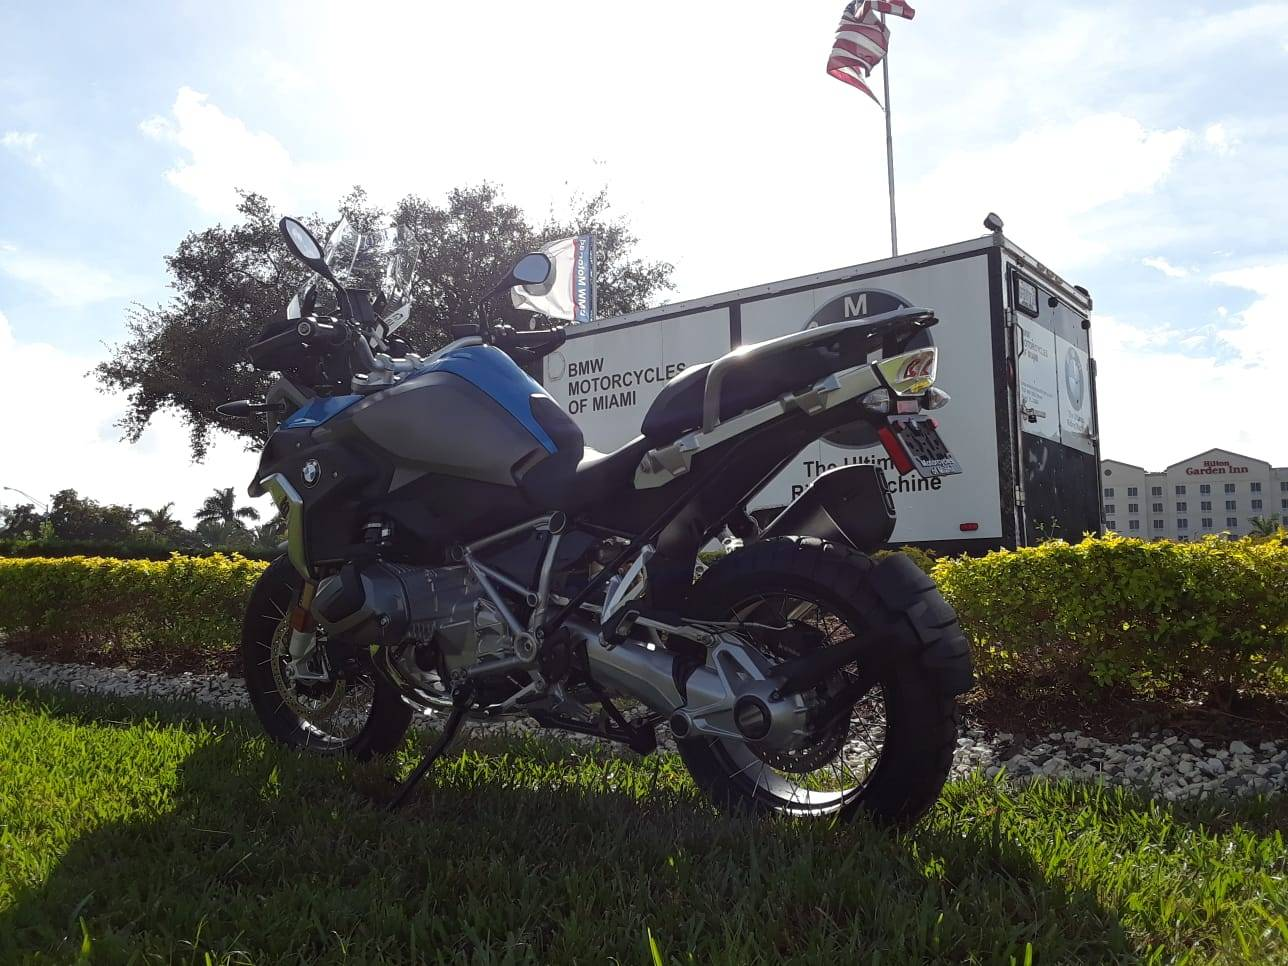 New 2019 BMW R 1250 GS for sale, New BMW R 1250GS, BMW R1250GS for sale, 1250GS, R1250GS, BMW Motorcycles of Miami, Motorcycles of Miami. Motorcycles Miami - Photo 5